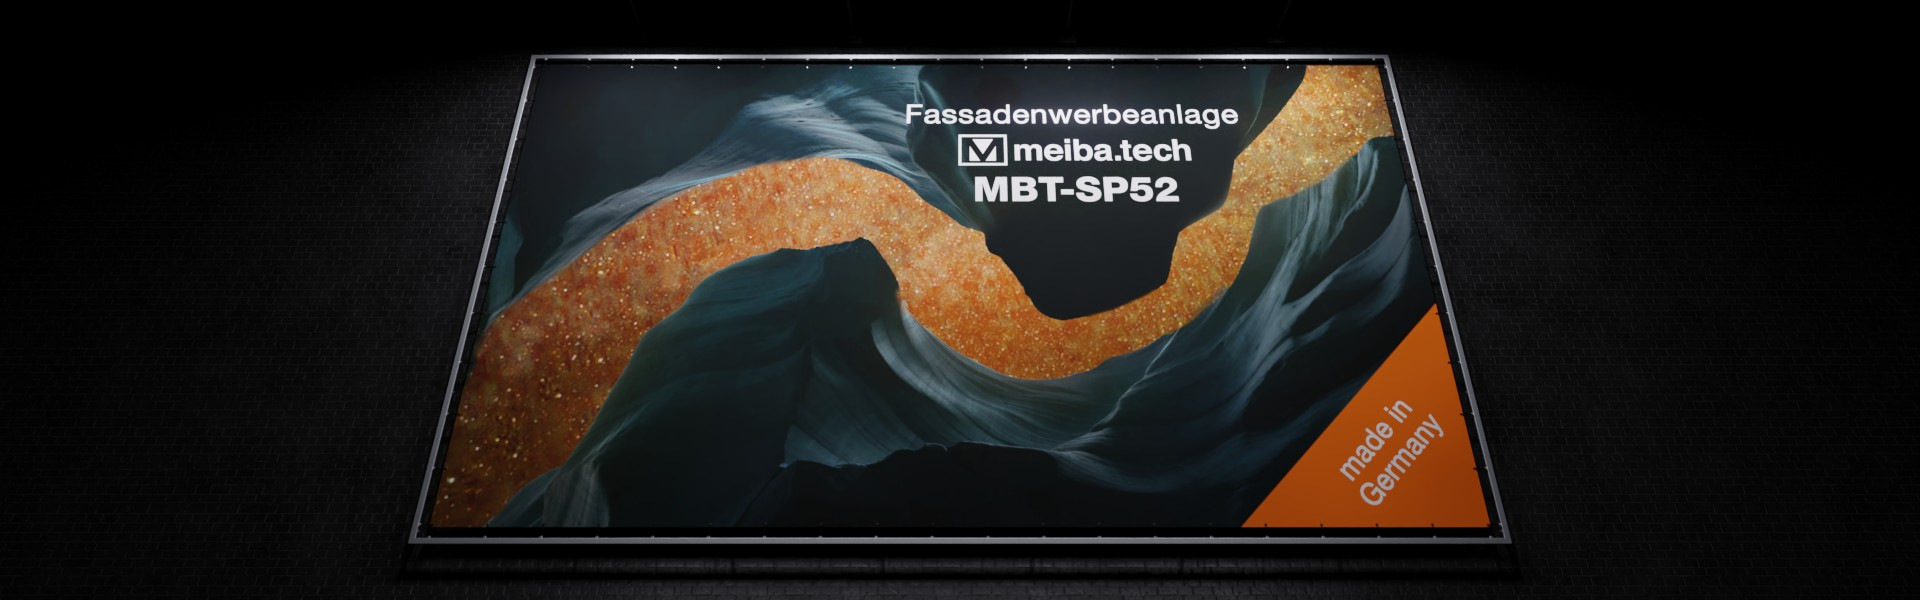 MBT-SP52: Modular advertising system for the attachment of facade advertising, lighted from the front below